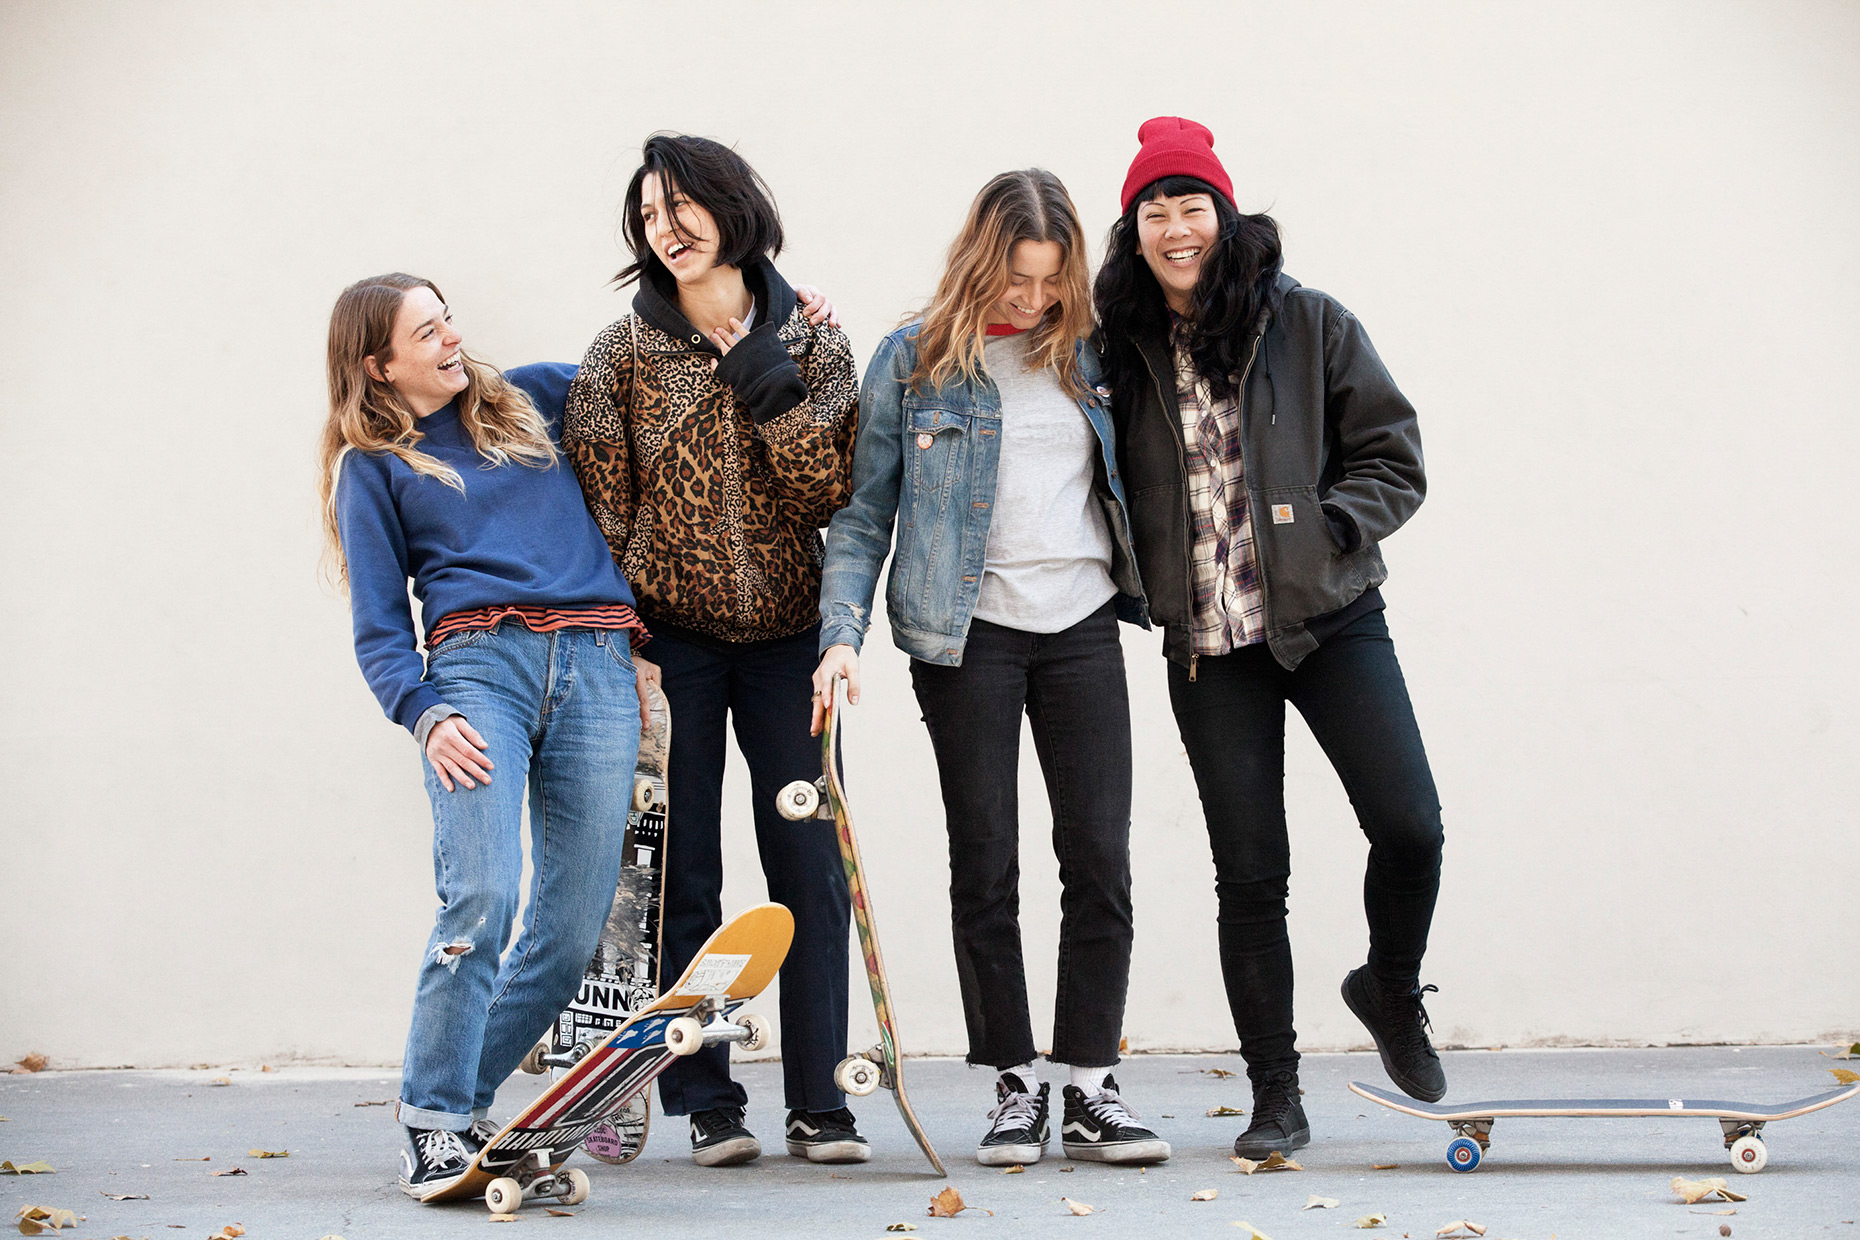 AB_161105_Drucker_SkateGirls_Brooklyn_MG_5607_FINAL